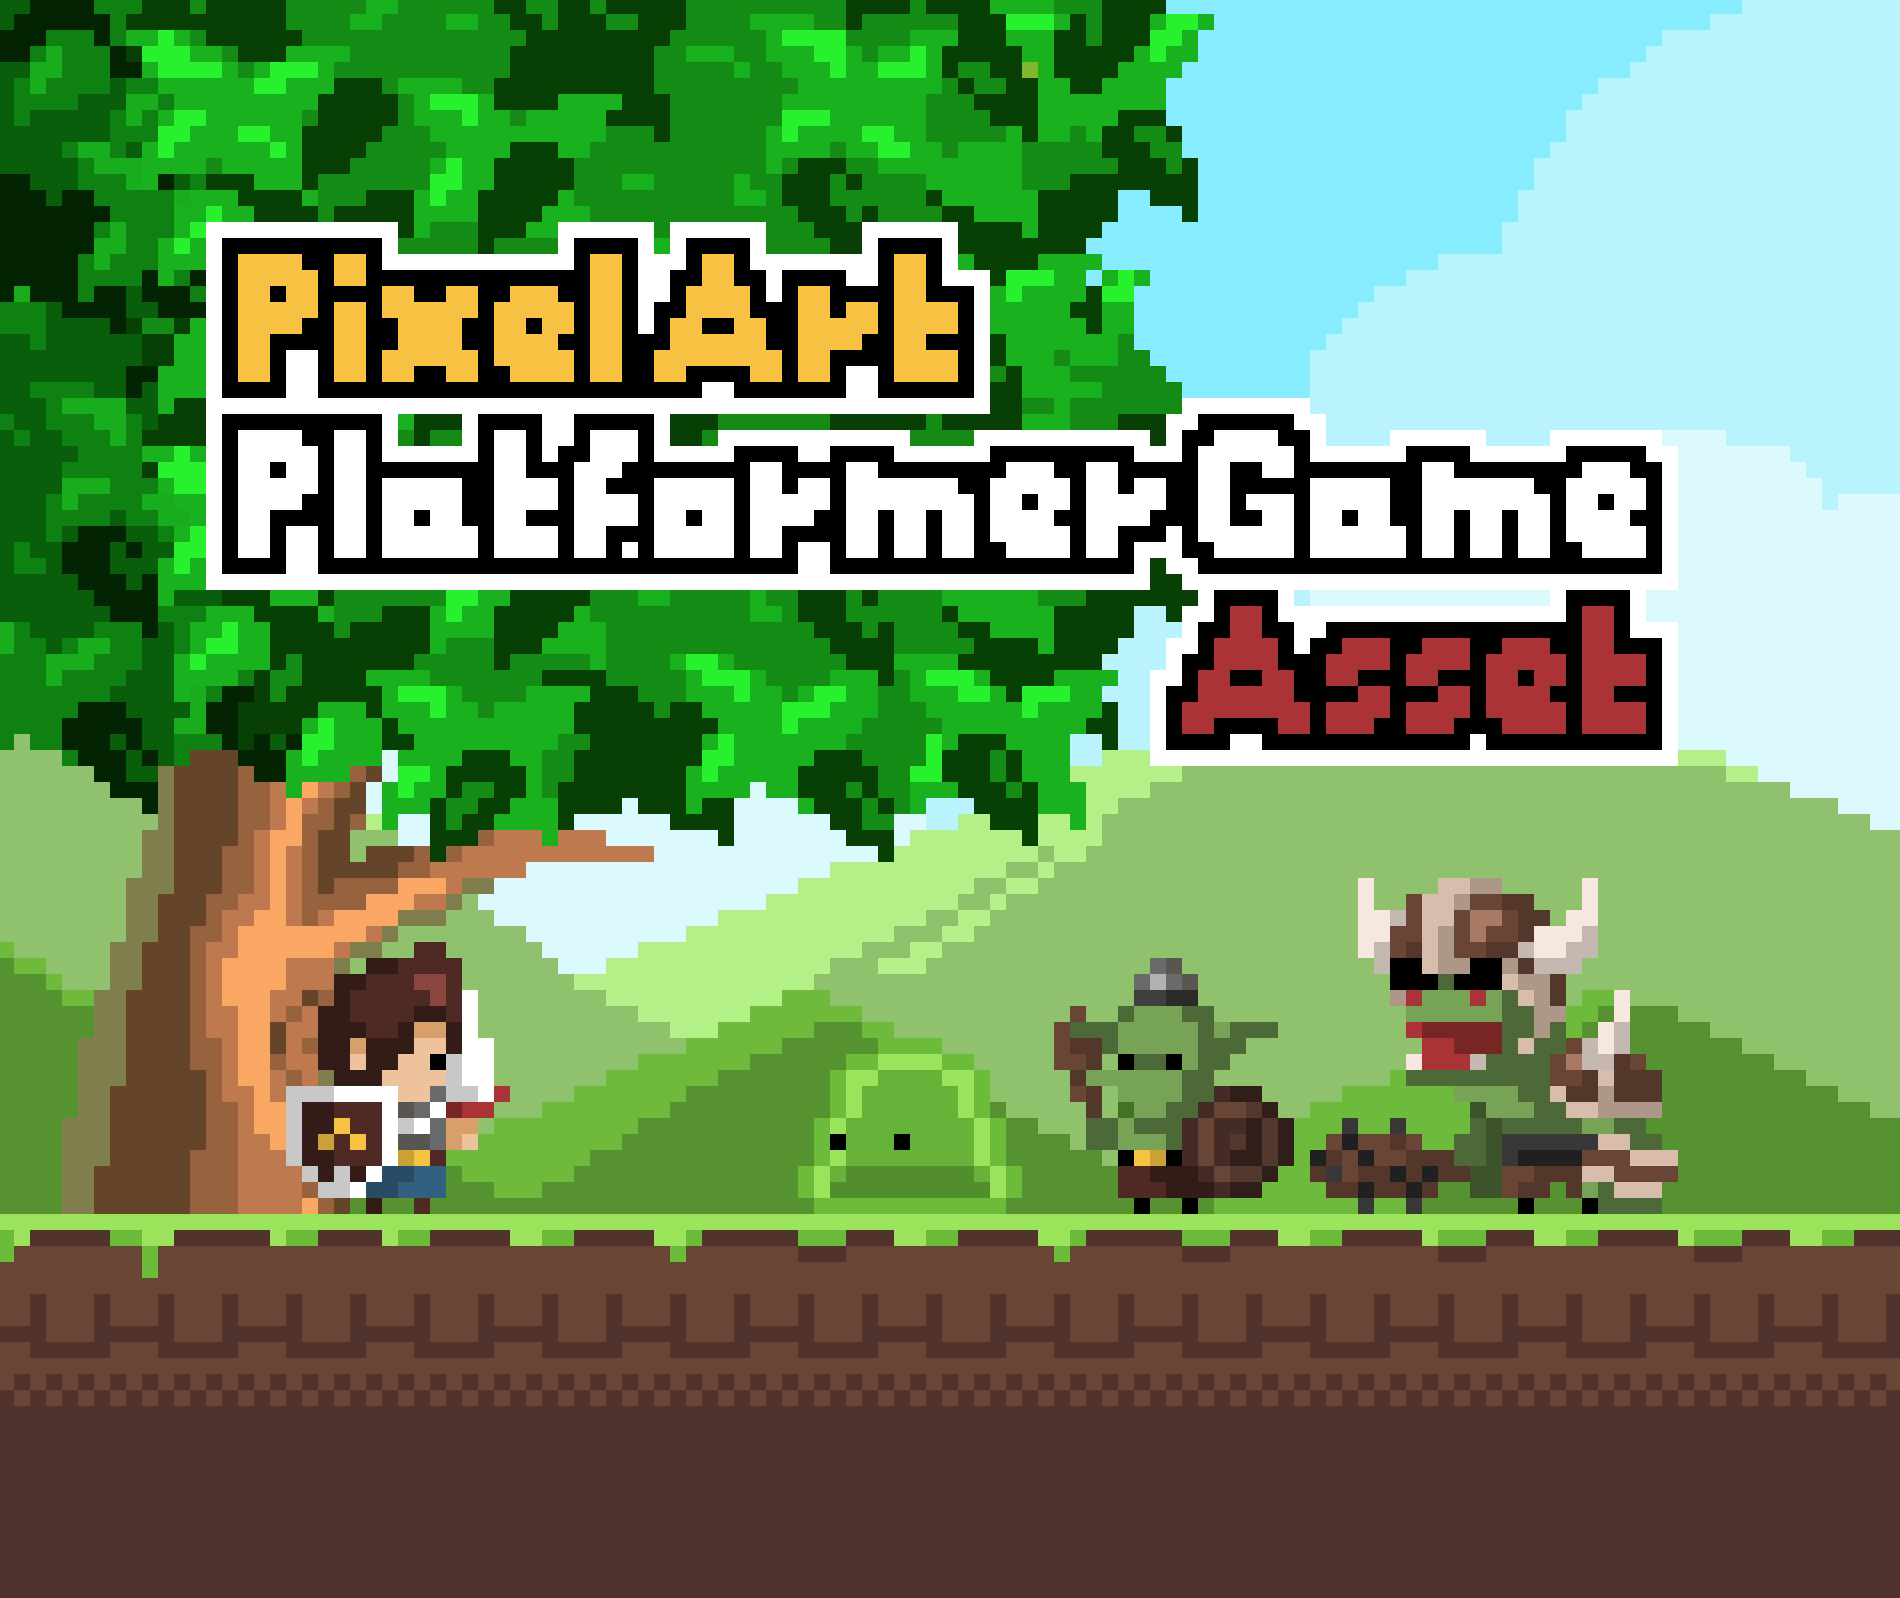 Pixel Art Asset for Platformer Game